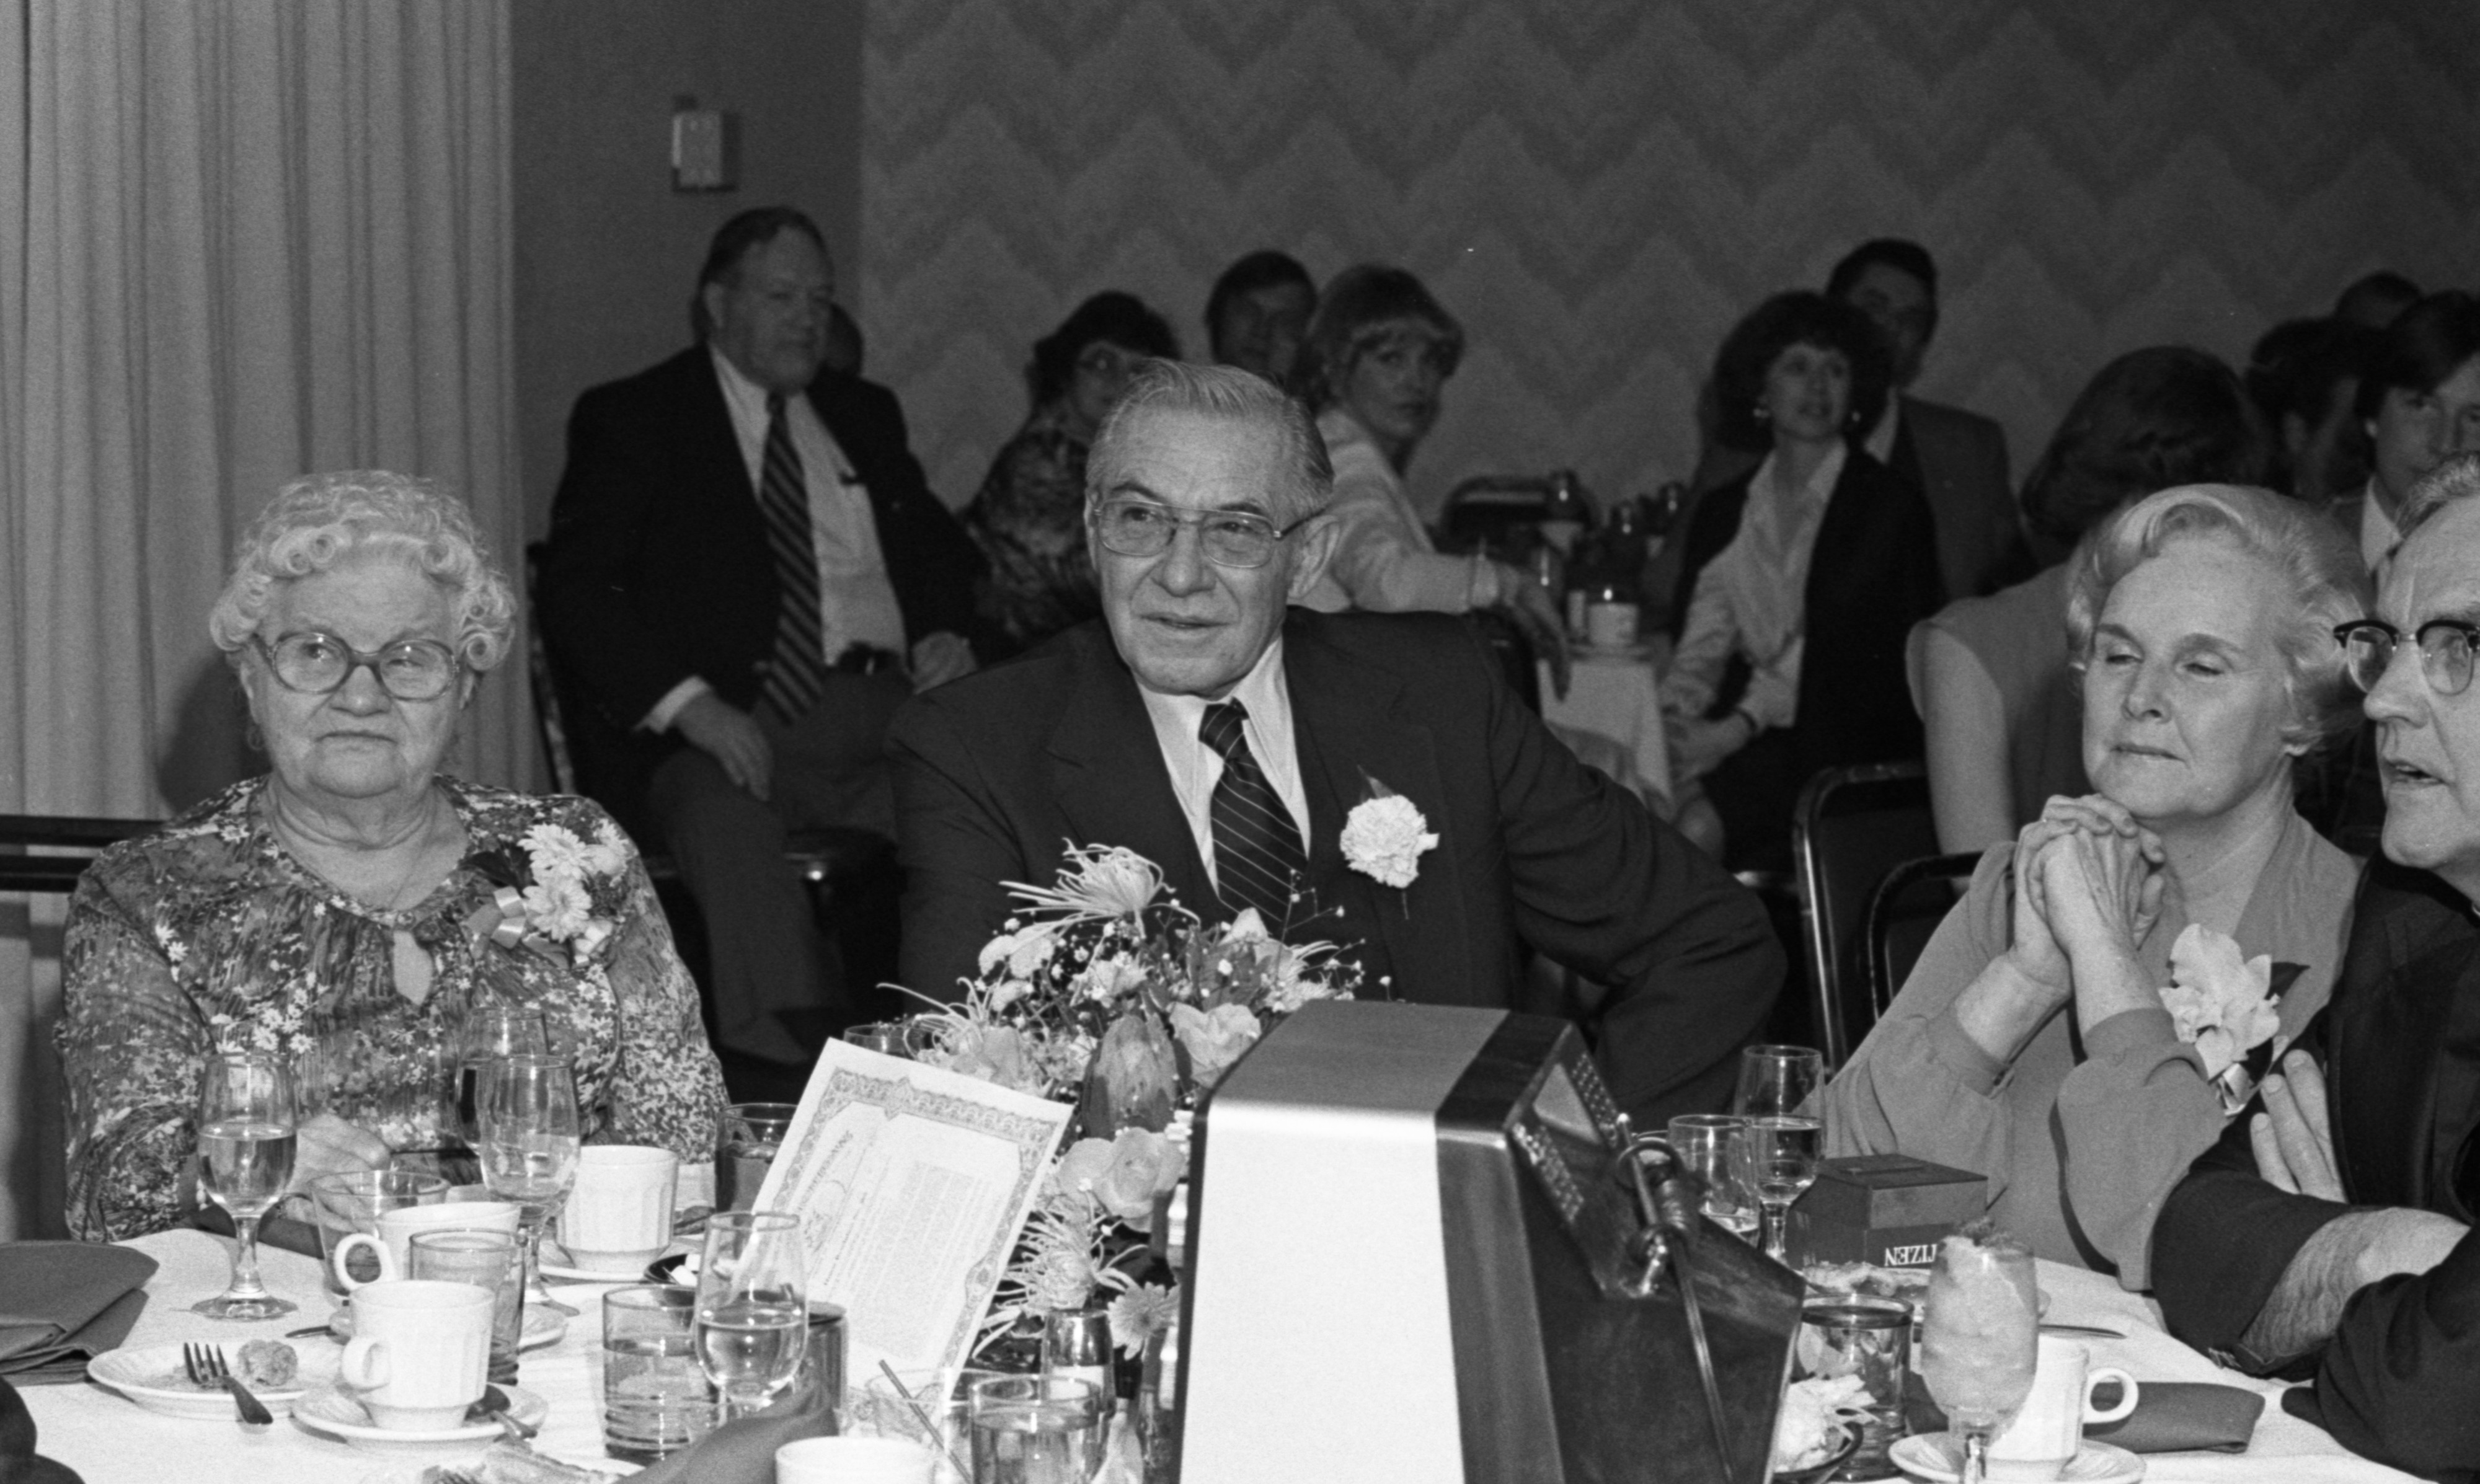 Retiring Ann Arbor Police Chief Walter E. Krasny Honored at Dinner, March 1980 image